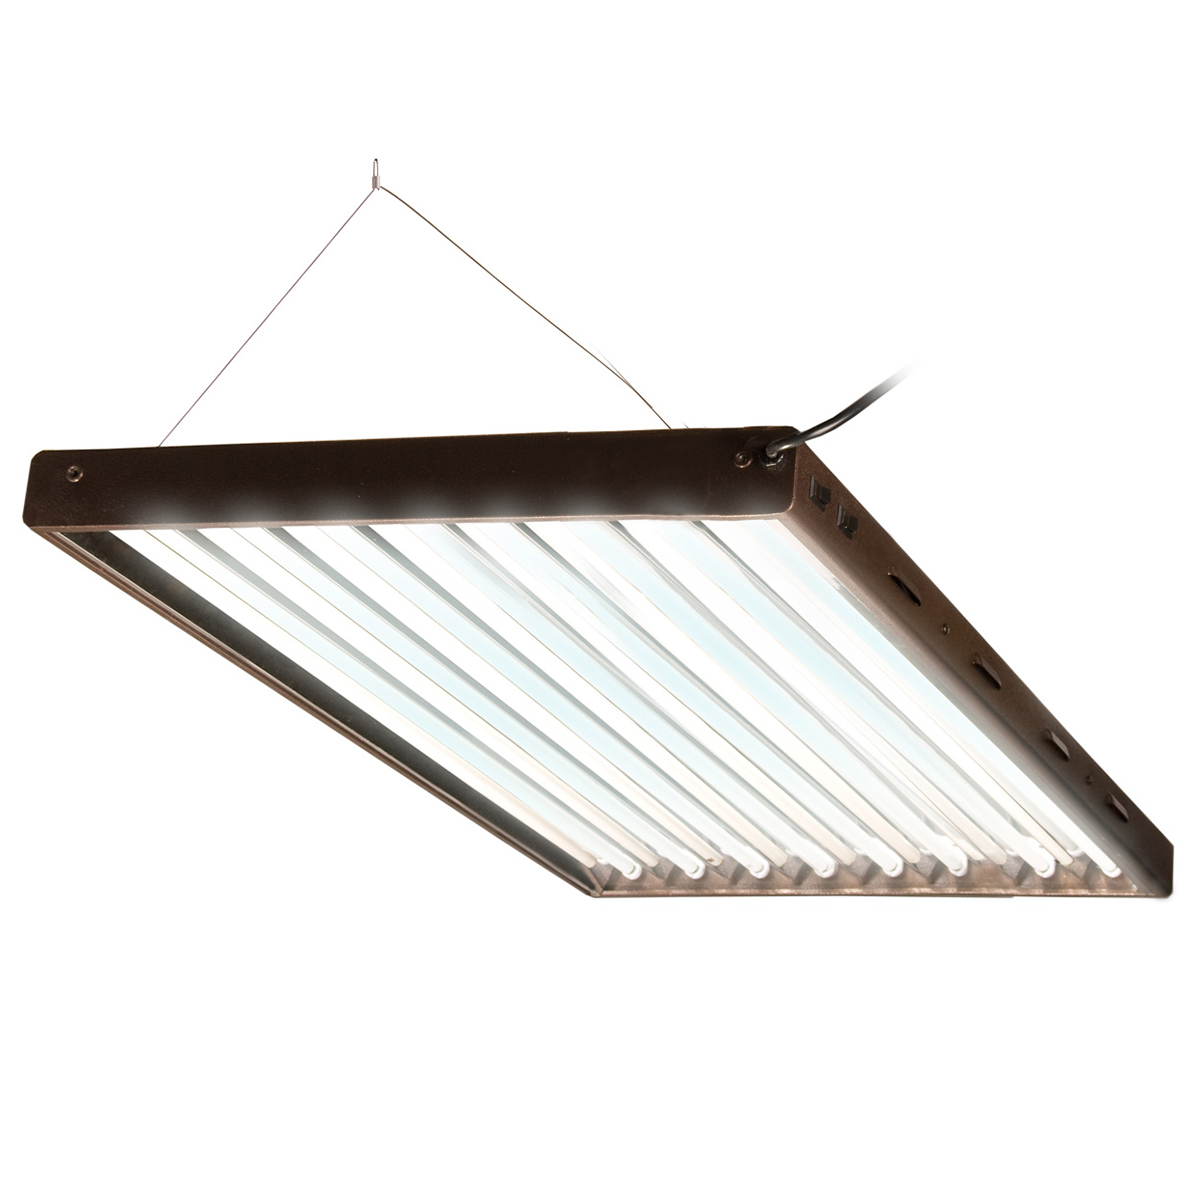 Agrobrite Designer T5 432W 4' 8-Tube Daisy Chainable Grow Light Fixture + Lamps